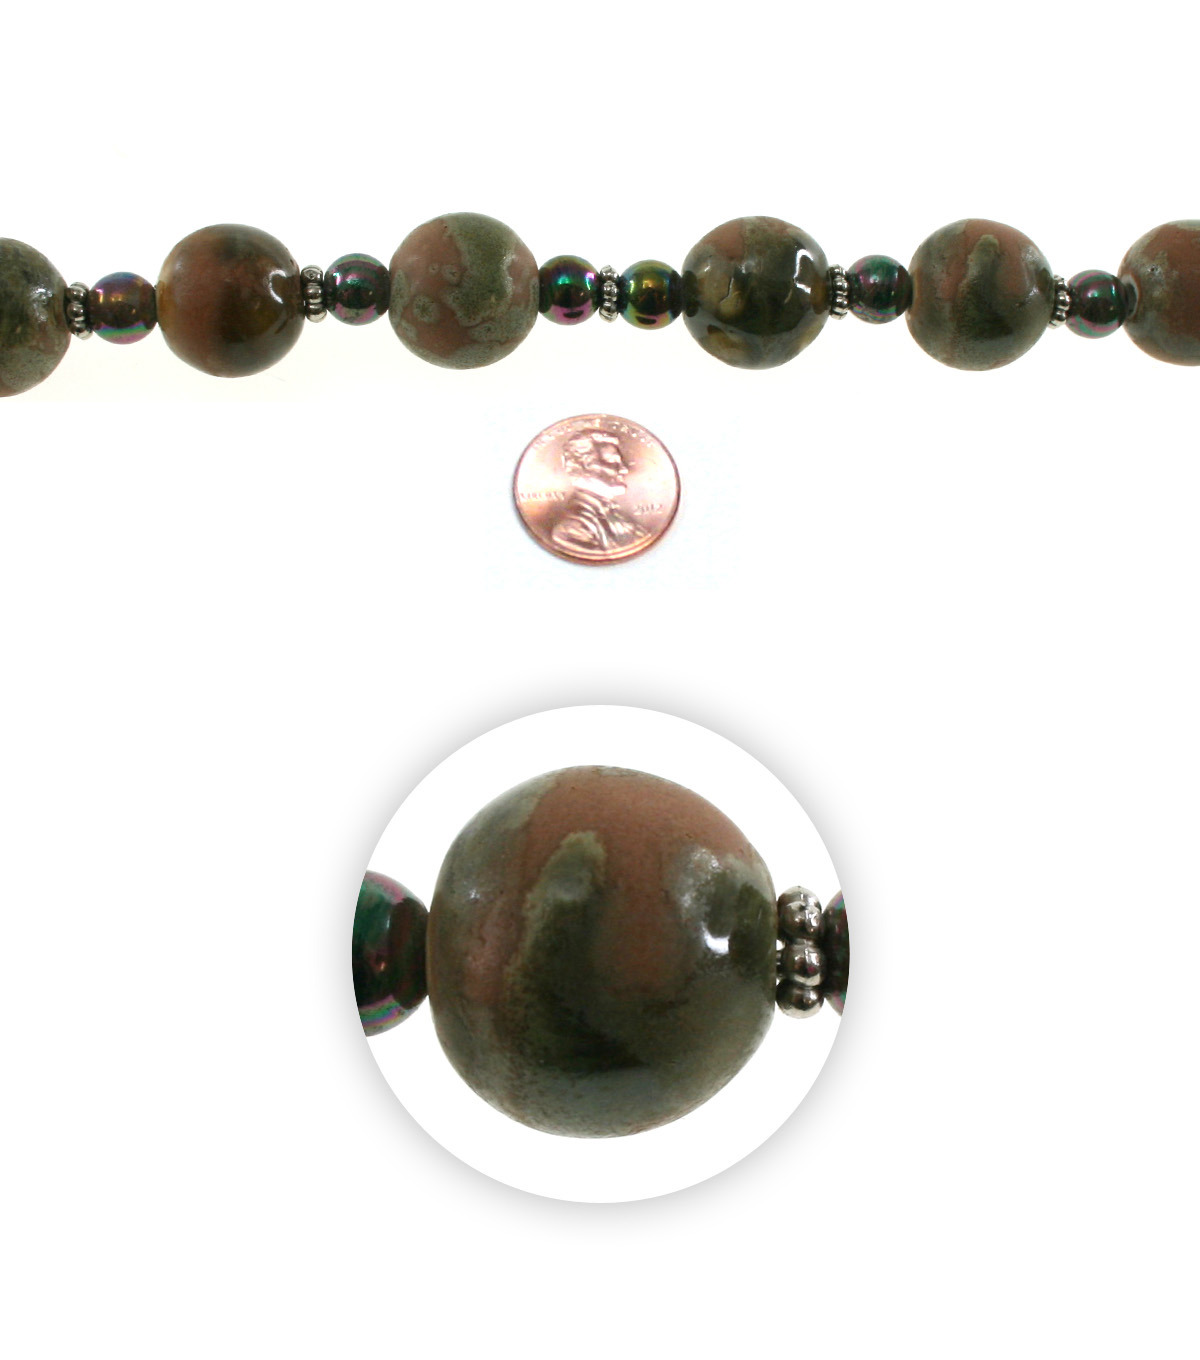 Advantus/Sulyn 7 in Cavern Spheres Bead Strand, Solid Ground